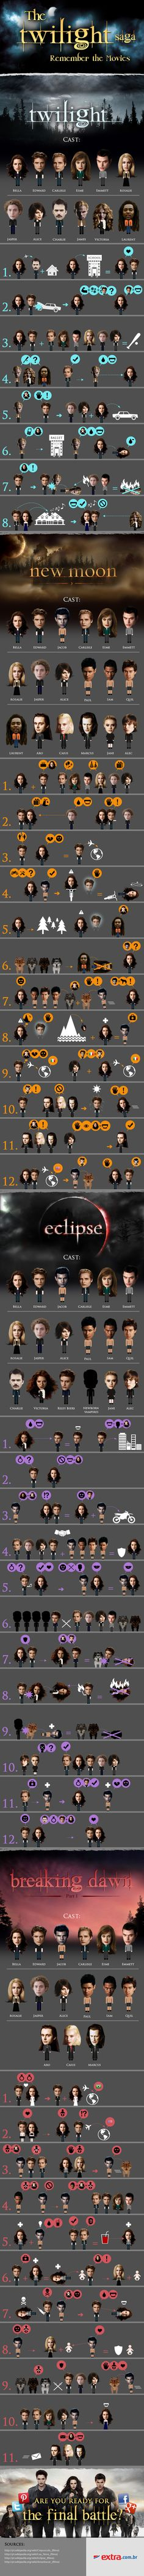 Remember the Movies – The Twilight Saga....this is super funny